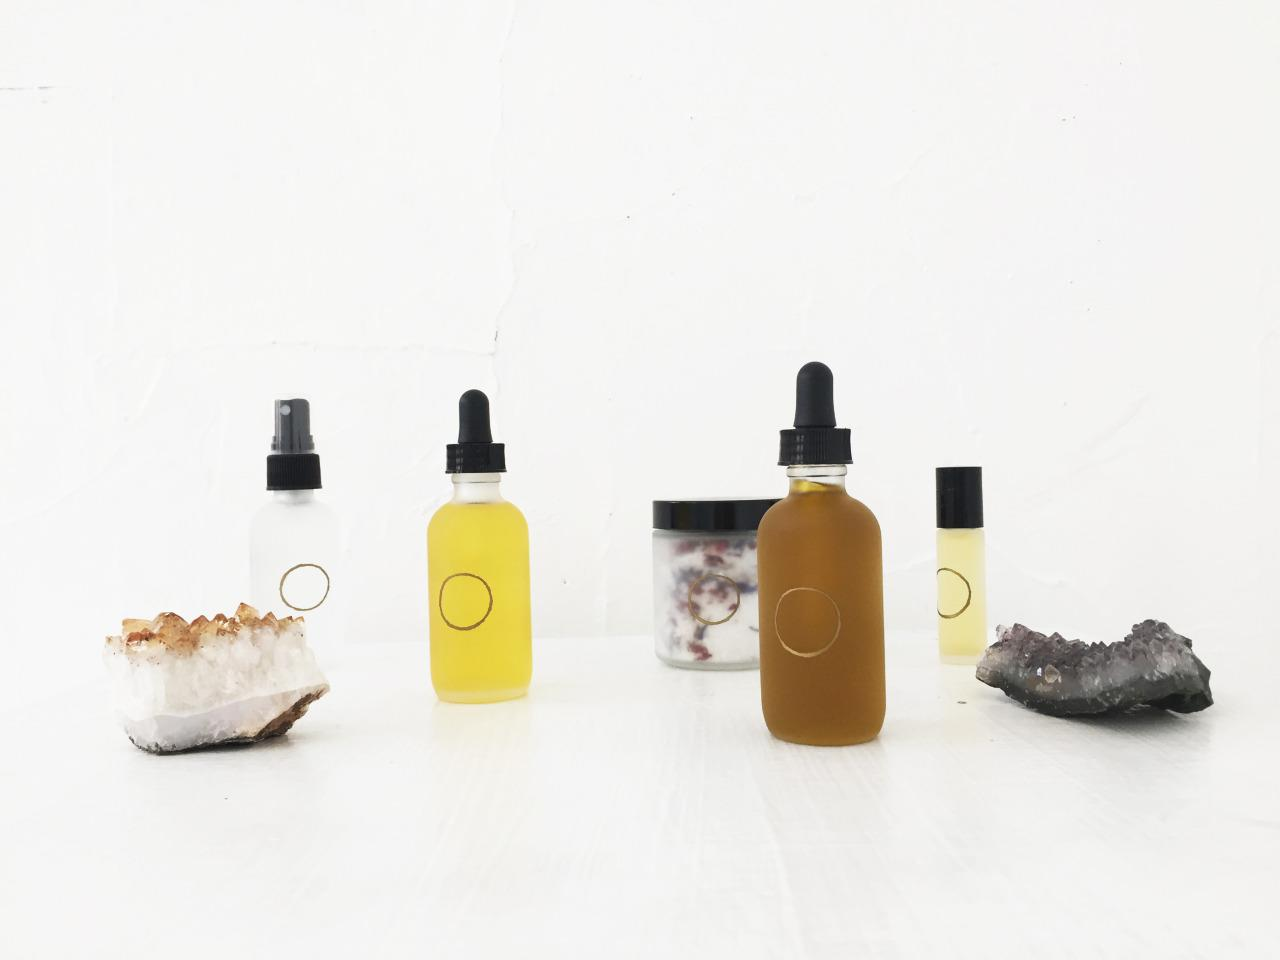 """<p><a href=""""http://www.benshen.co/"""">Benshen</a> is a Brooklyn-based organic skincare line with a focus on oils and crystals that come packaged in chic, simple bottles. The founder, Desiree Pais, began studying Chinese medicine and Acupuncture before launching the label a few years ago, and has developed a cult following amongst Brooklynites, not least for her well-known meditation classes and guru practices.</p>"""